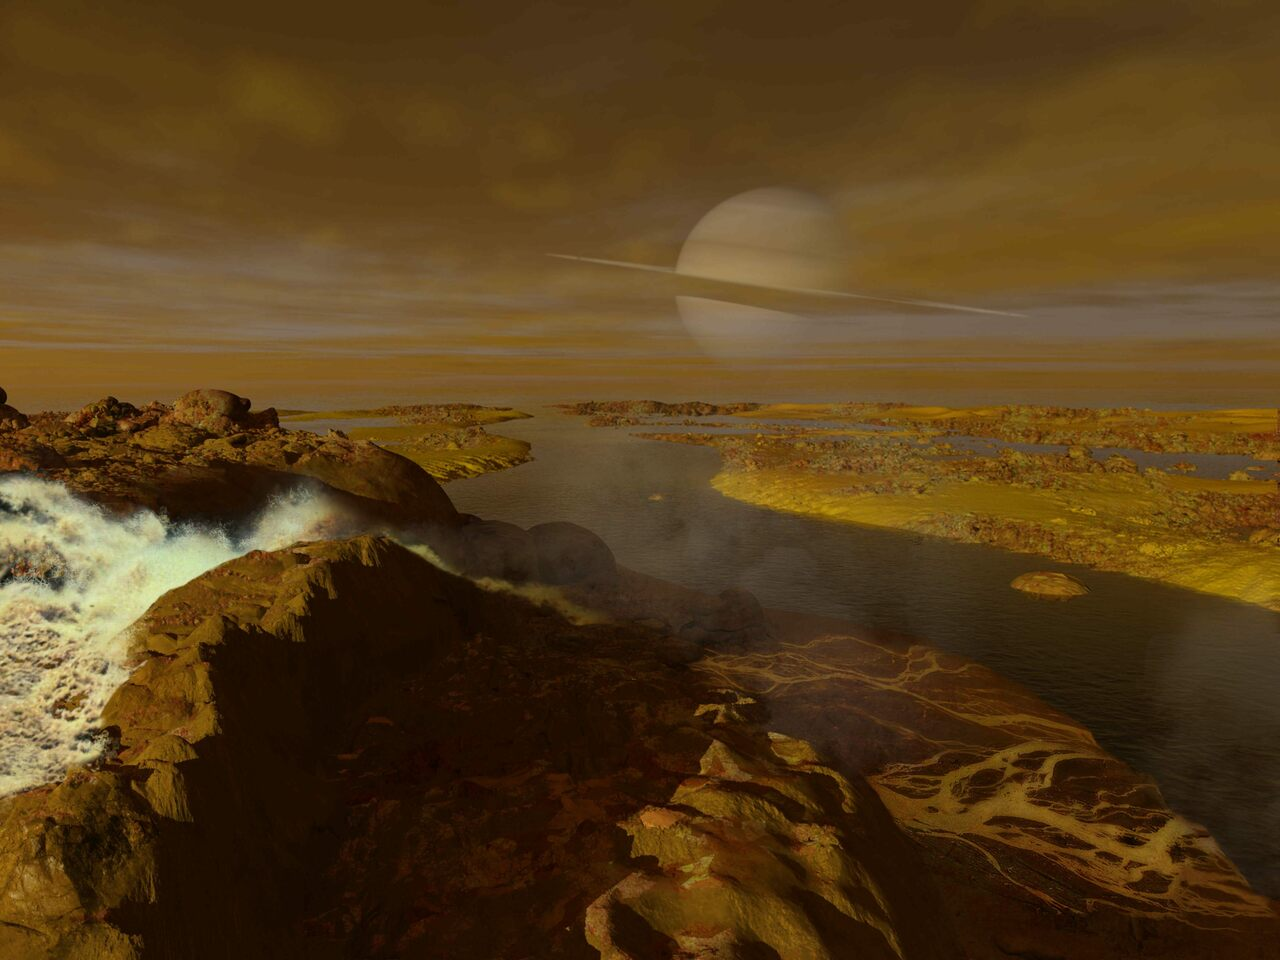 The methane river delta on Titan, one of Saturn's moons, as depicted by space artist Ron Miller.